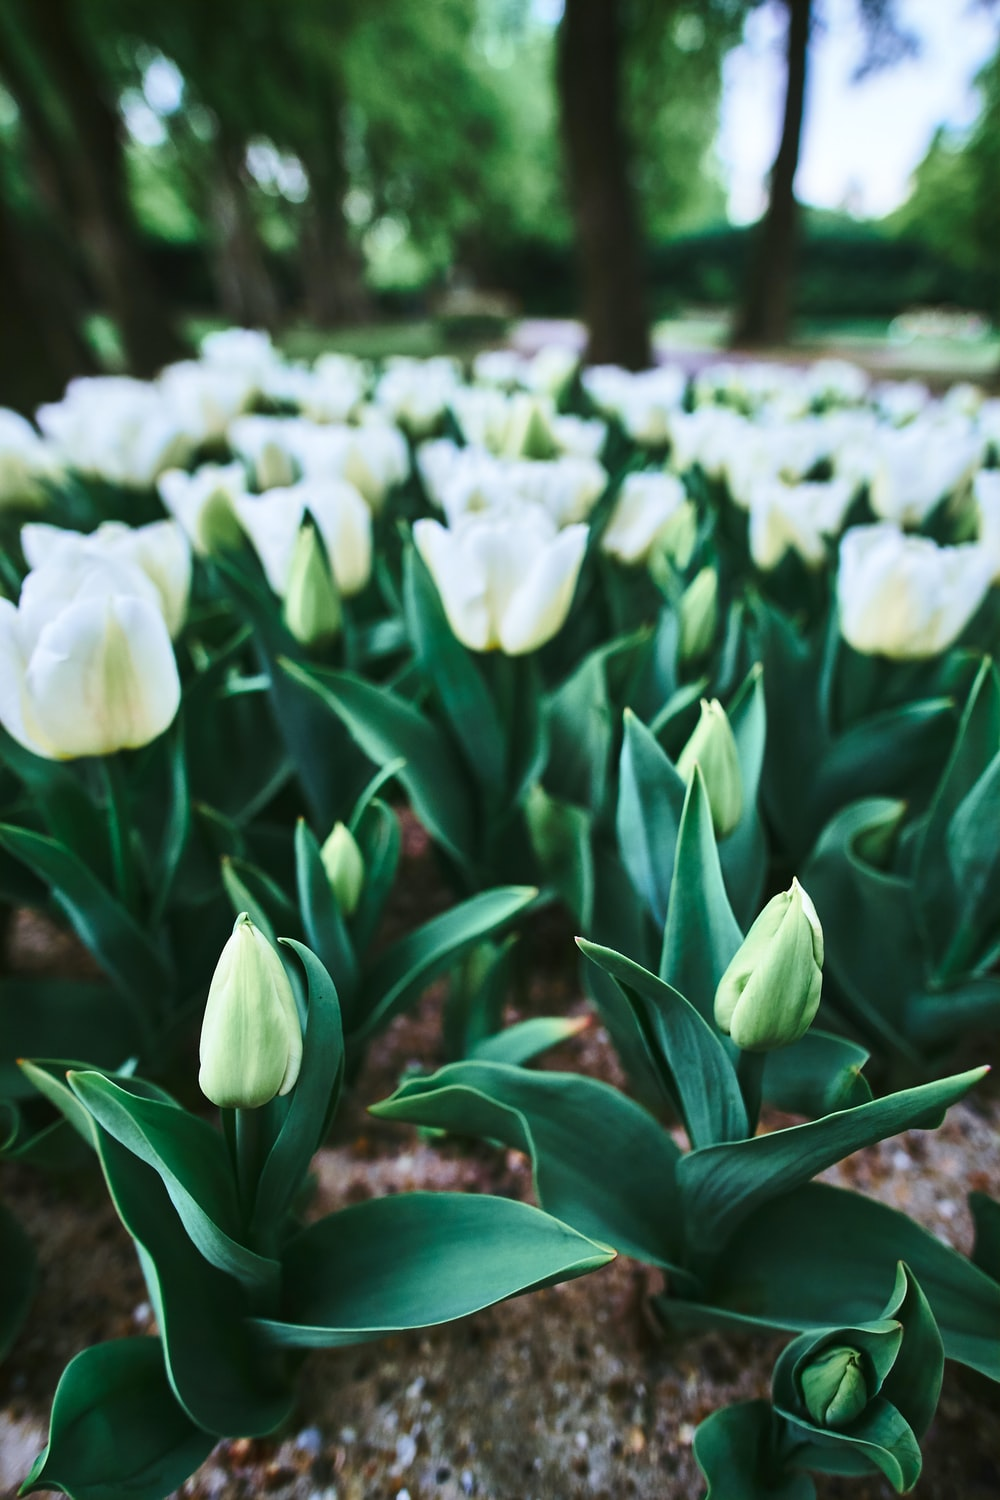 white tulips in bloom during daytime